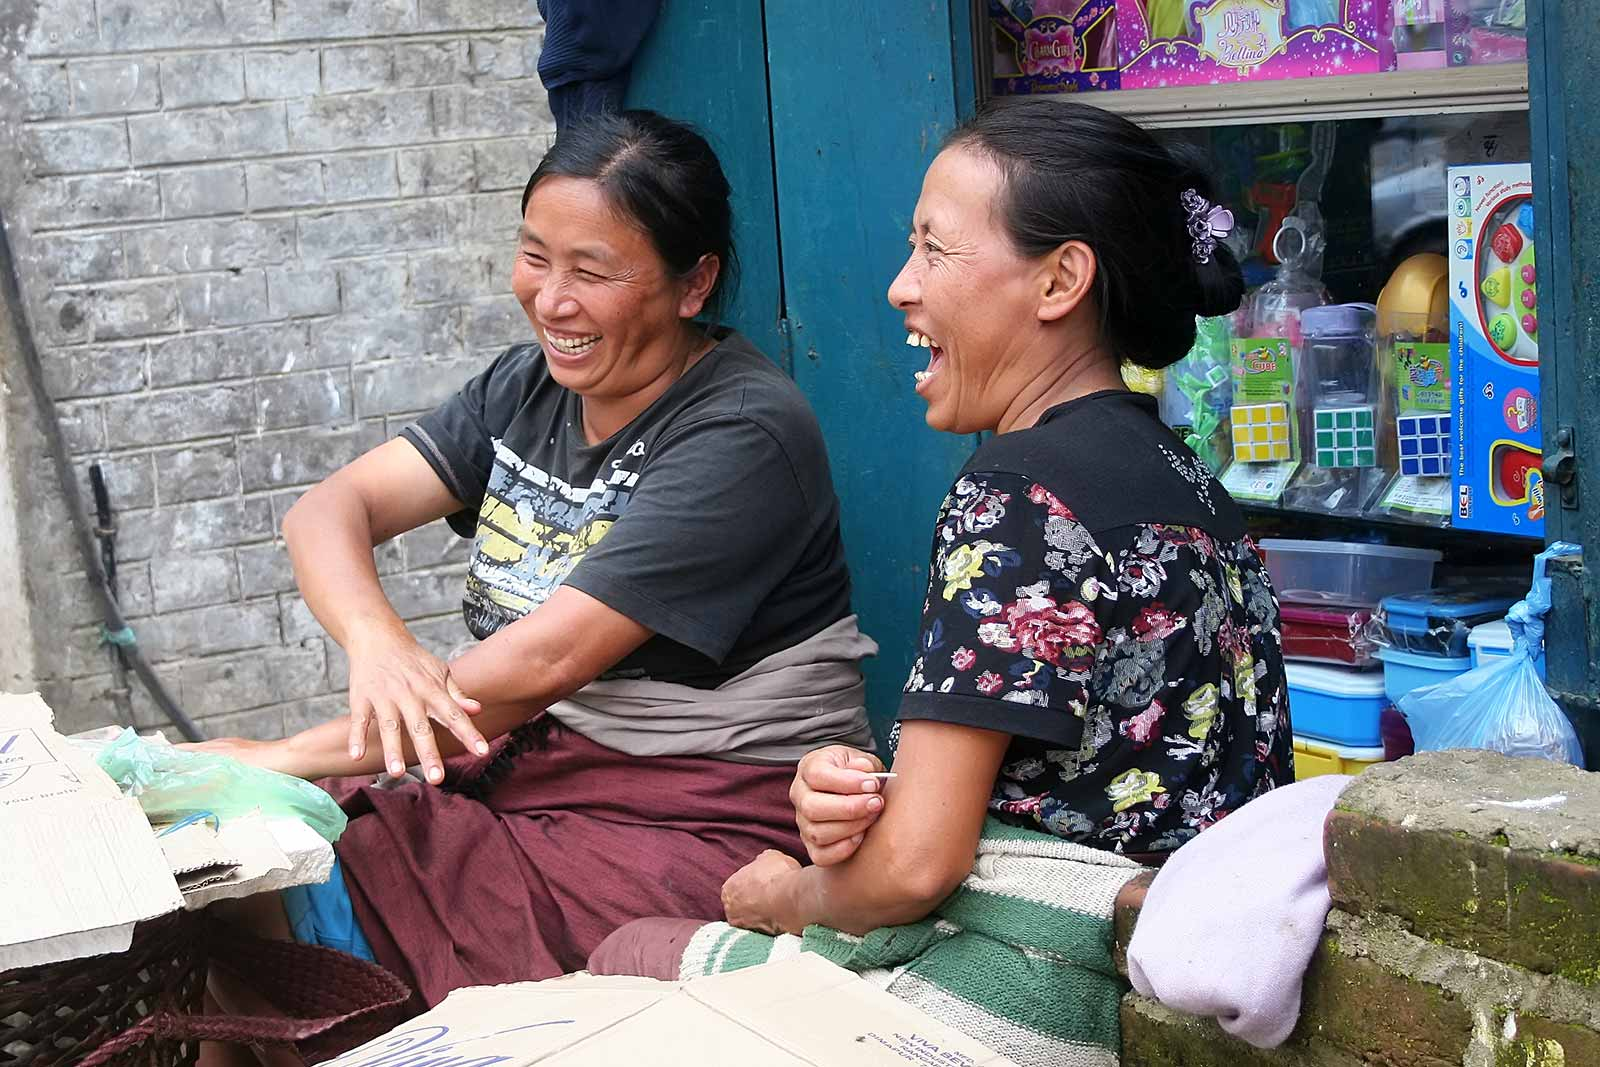 These market women really seemed to enjoy themselves ;)